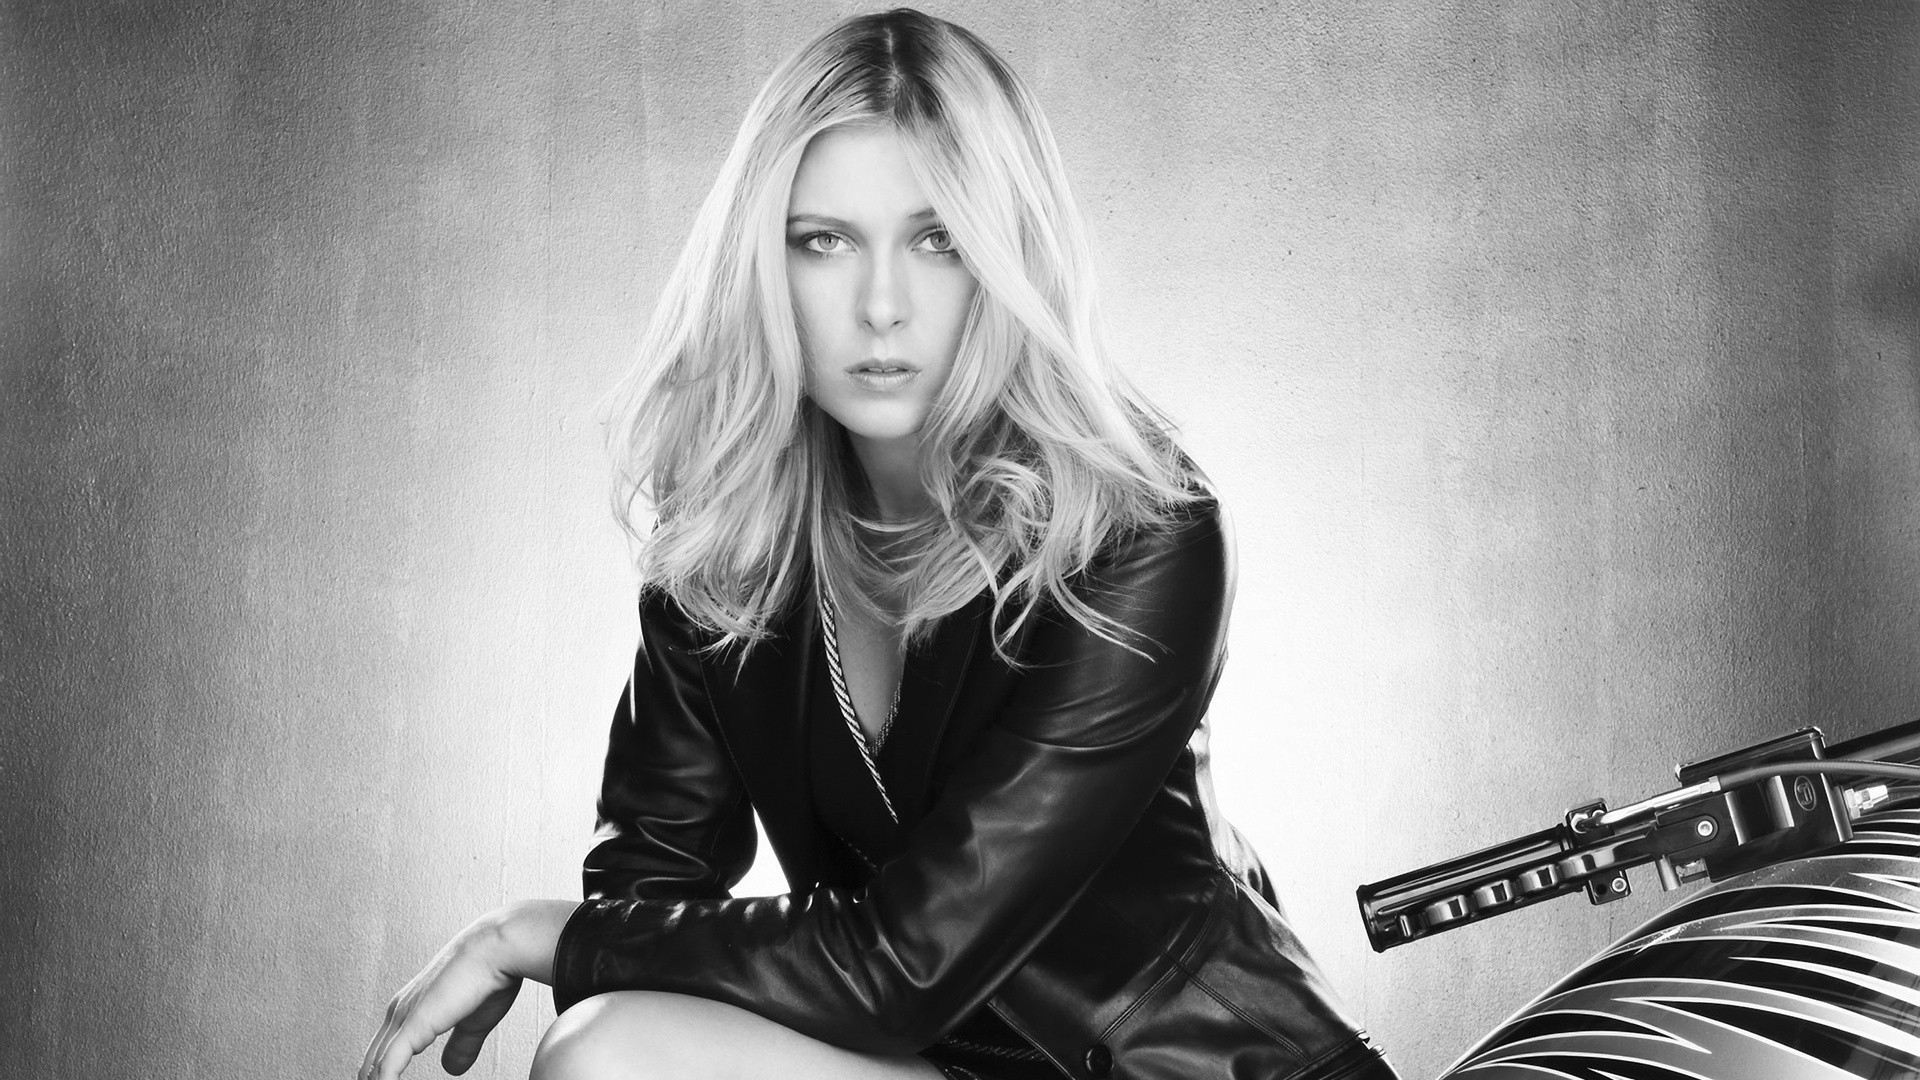 maria sharapova monochrome motorbikes HD Wallpaper